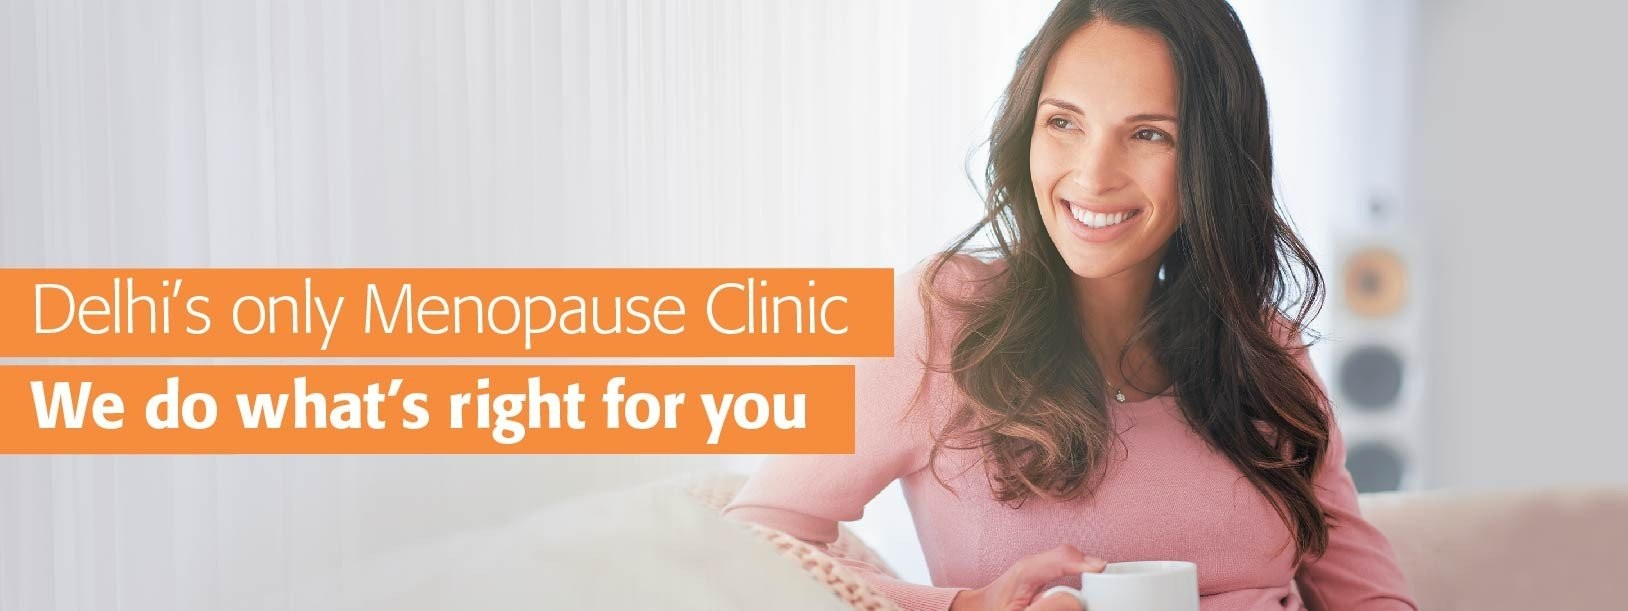 Delhi's only Menopause clinic. We do what's right for yoy